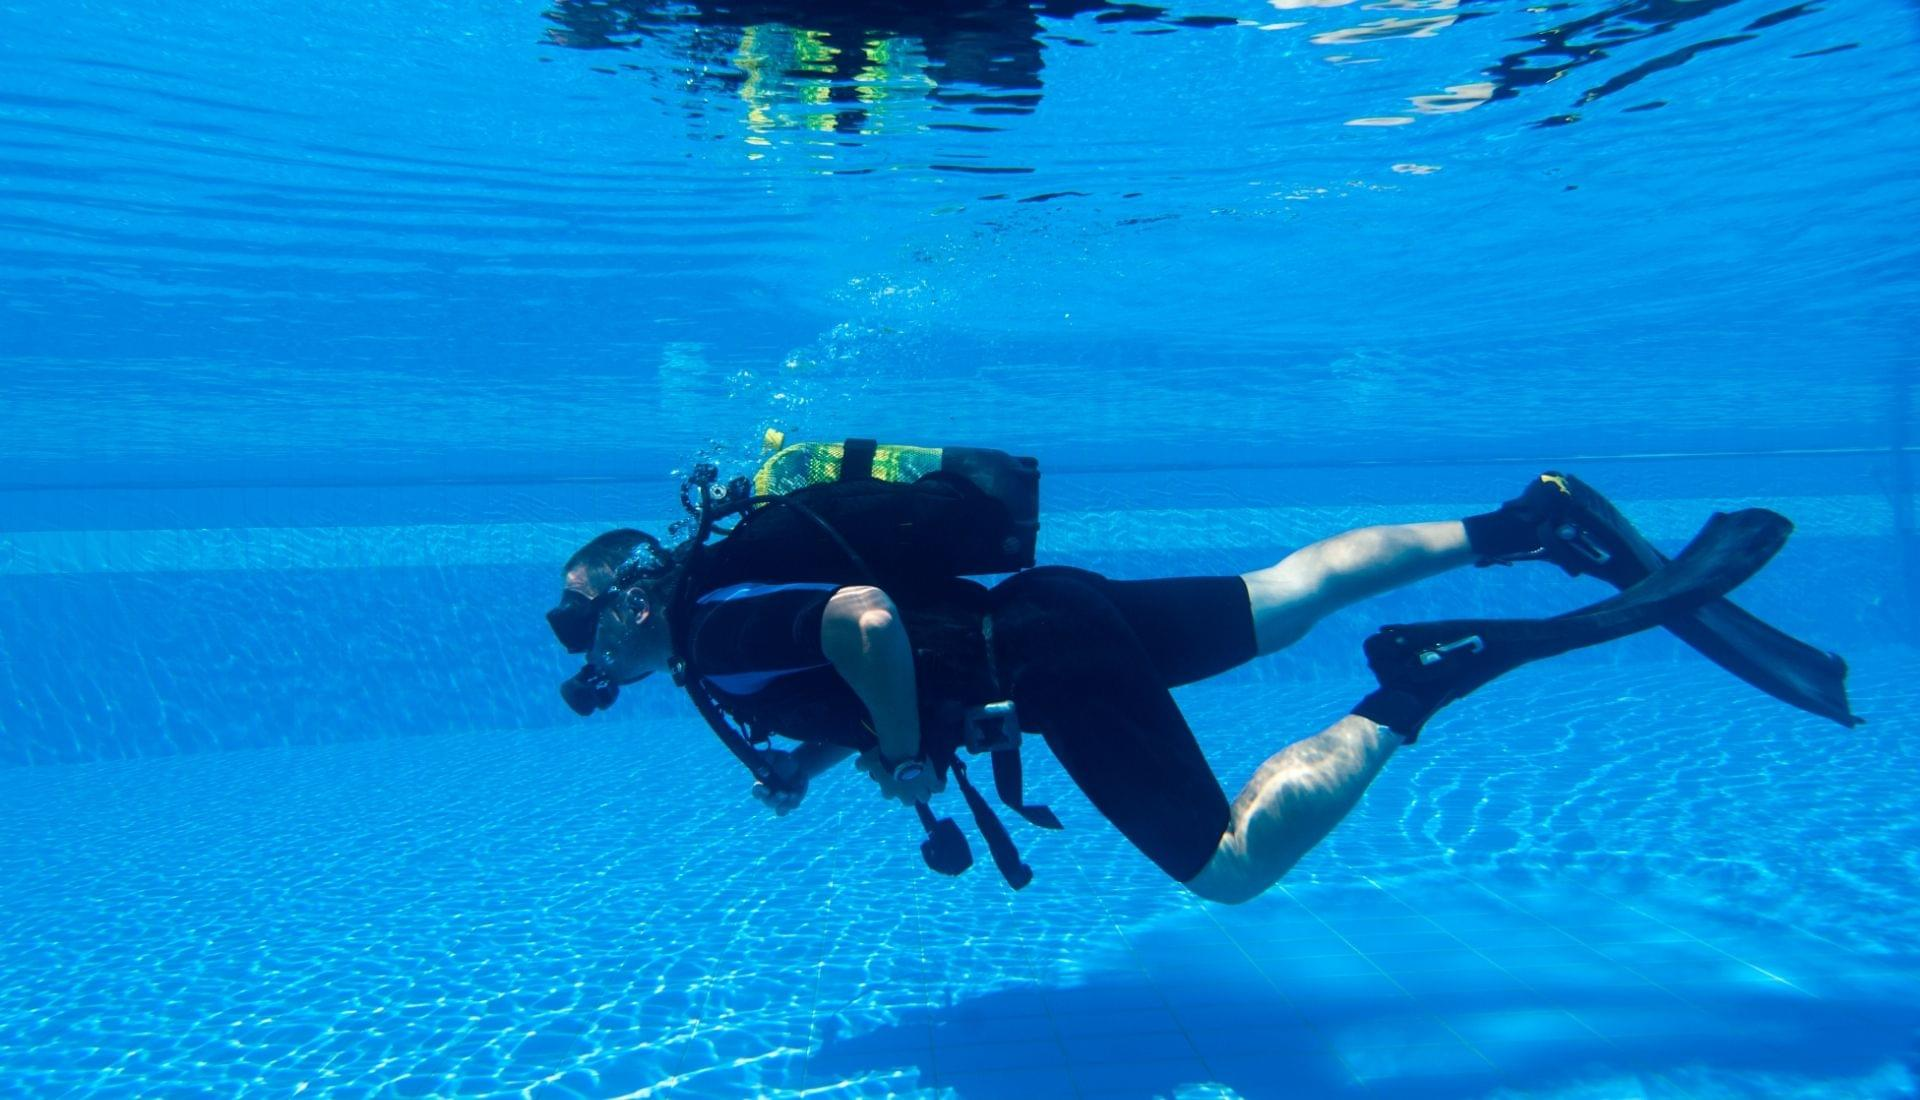 scuba diver practicing in pool